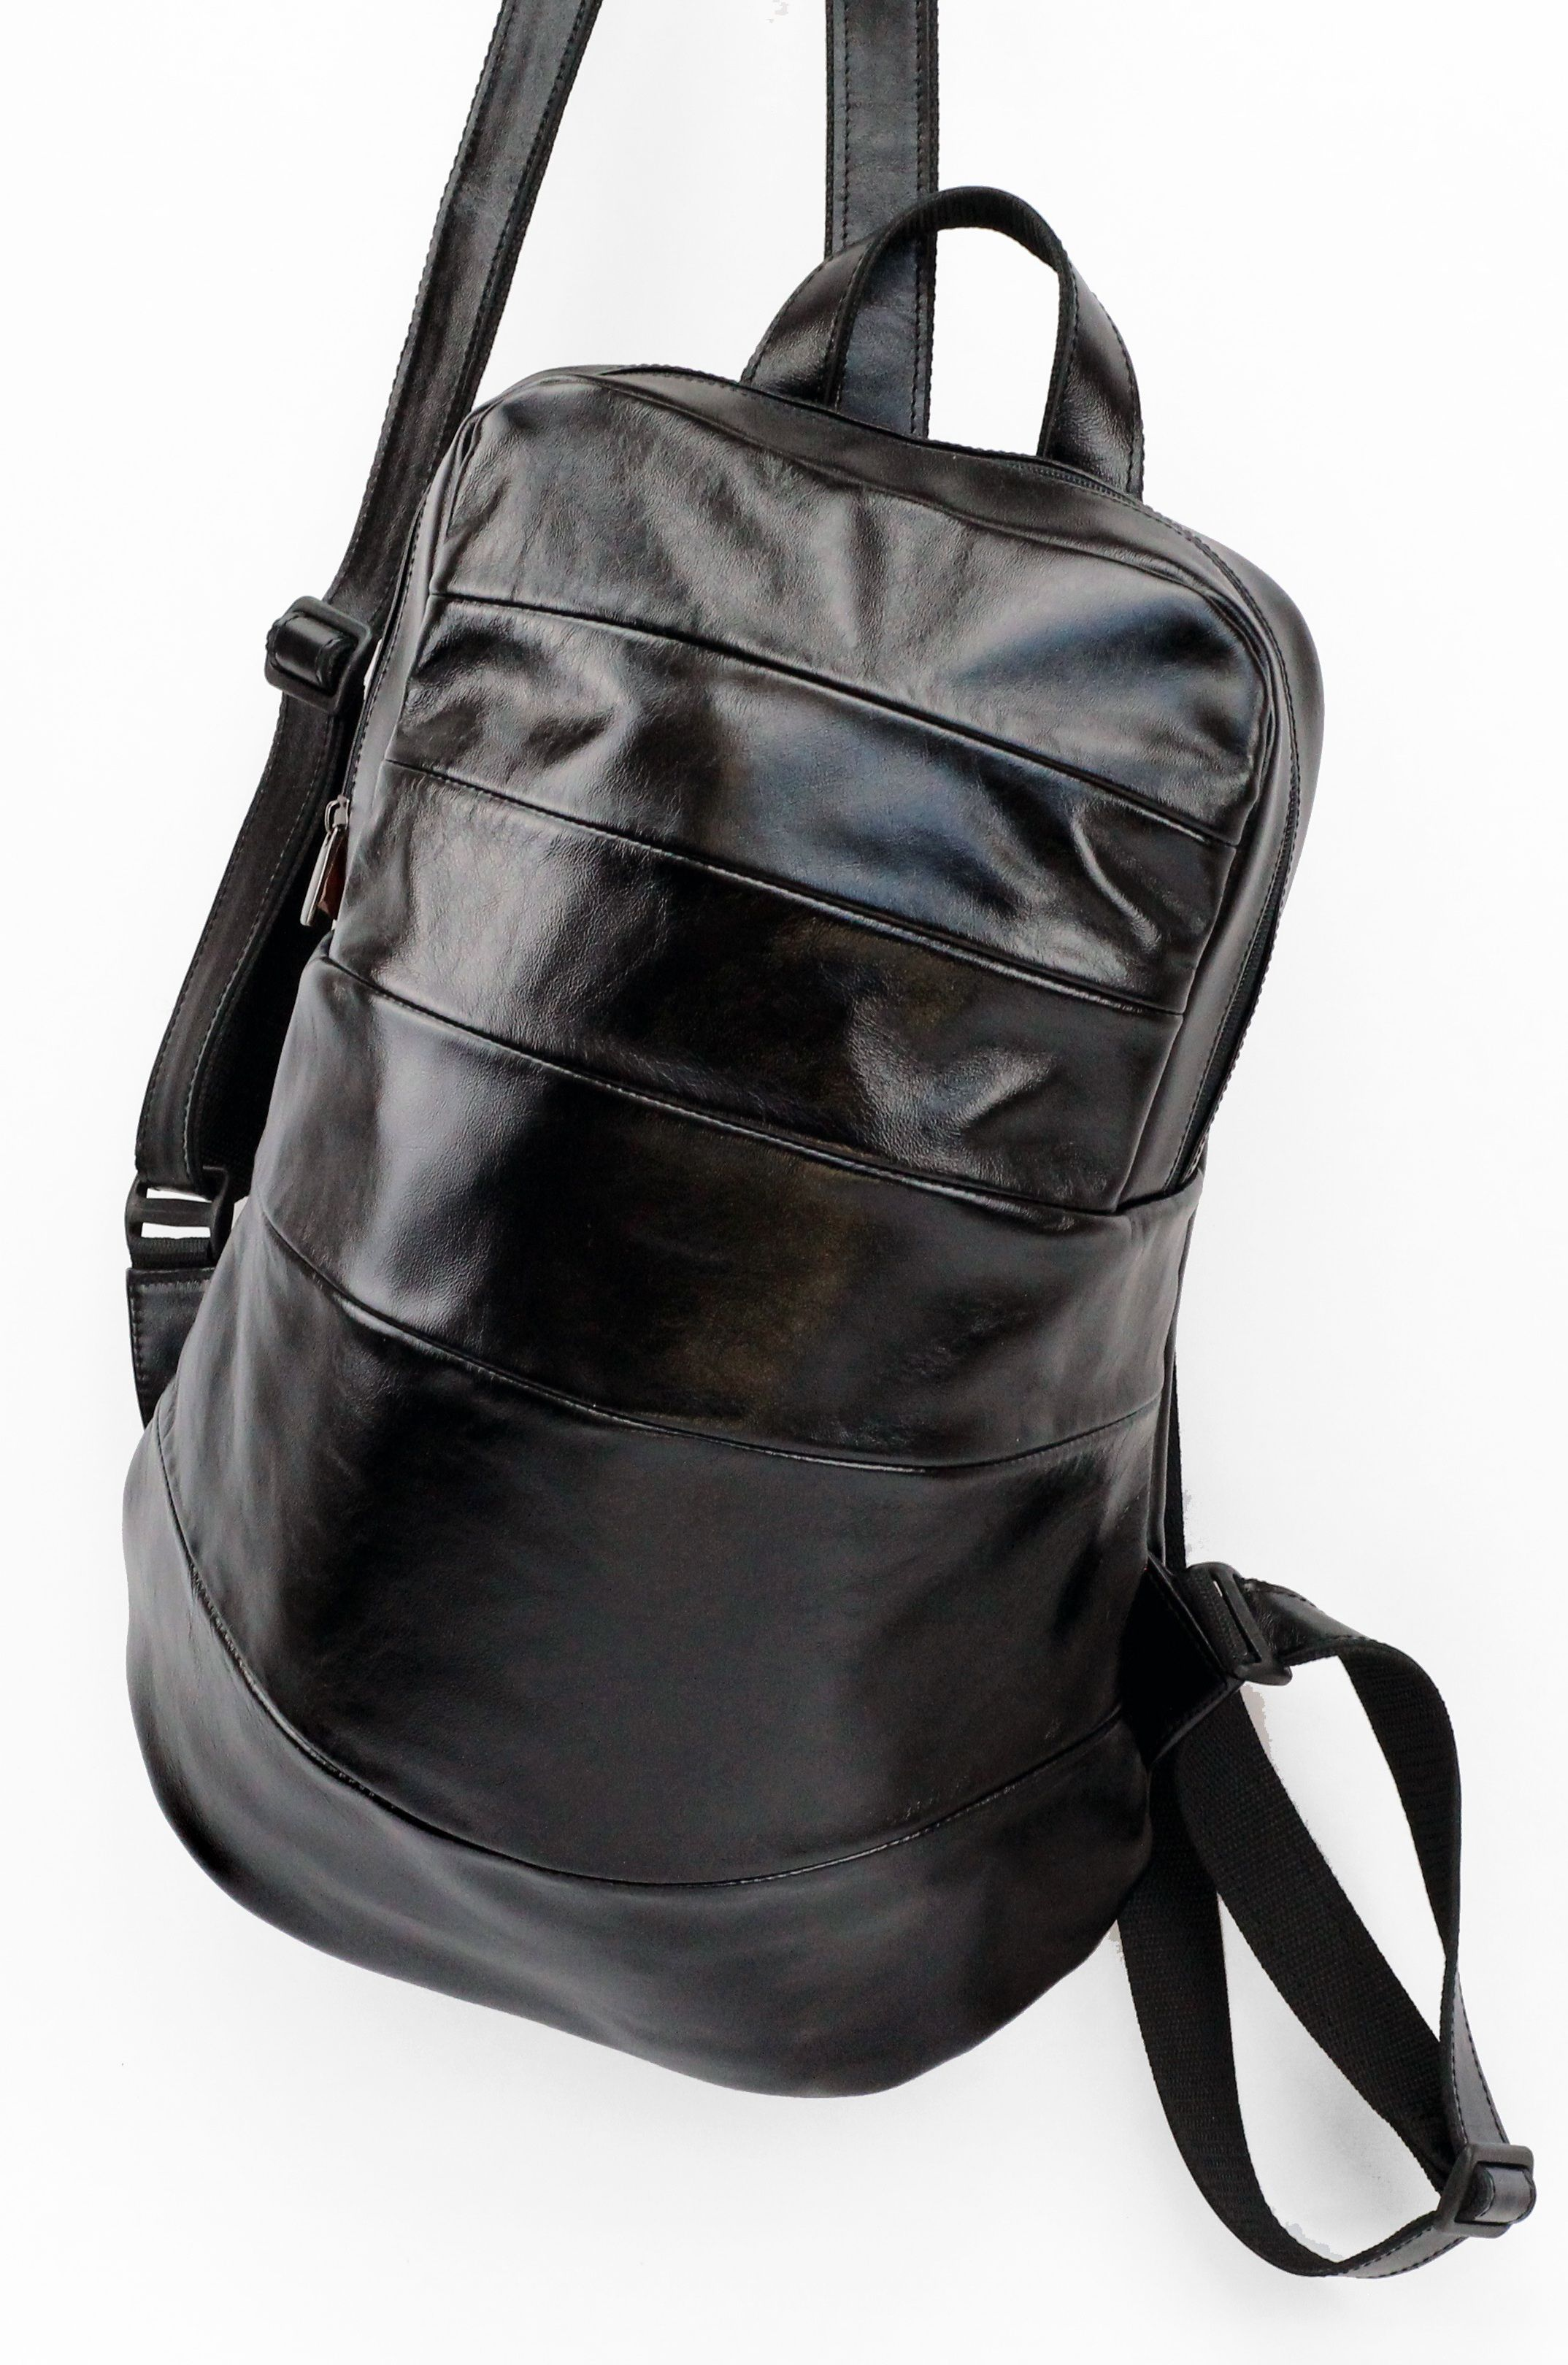 3c0115ea0338 Total Black Concept Leather Backpack by Leonid Titow